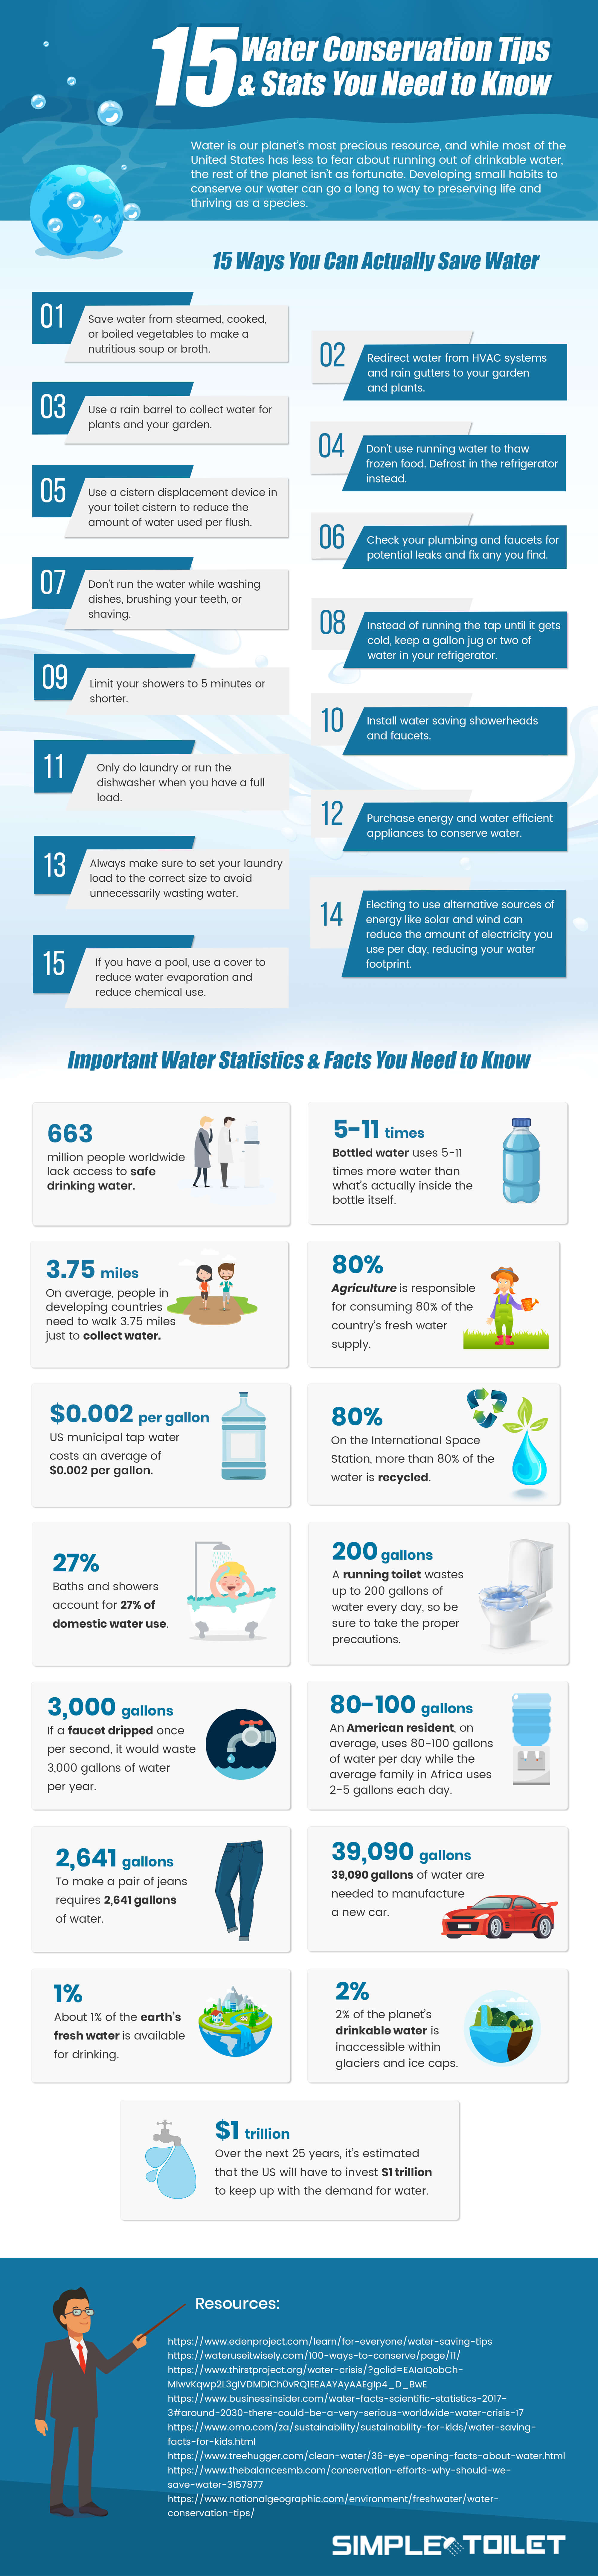 water conservation tips to save water